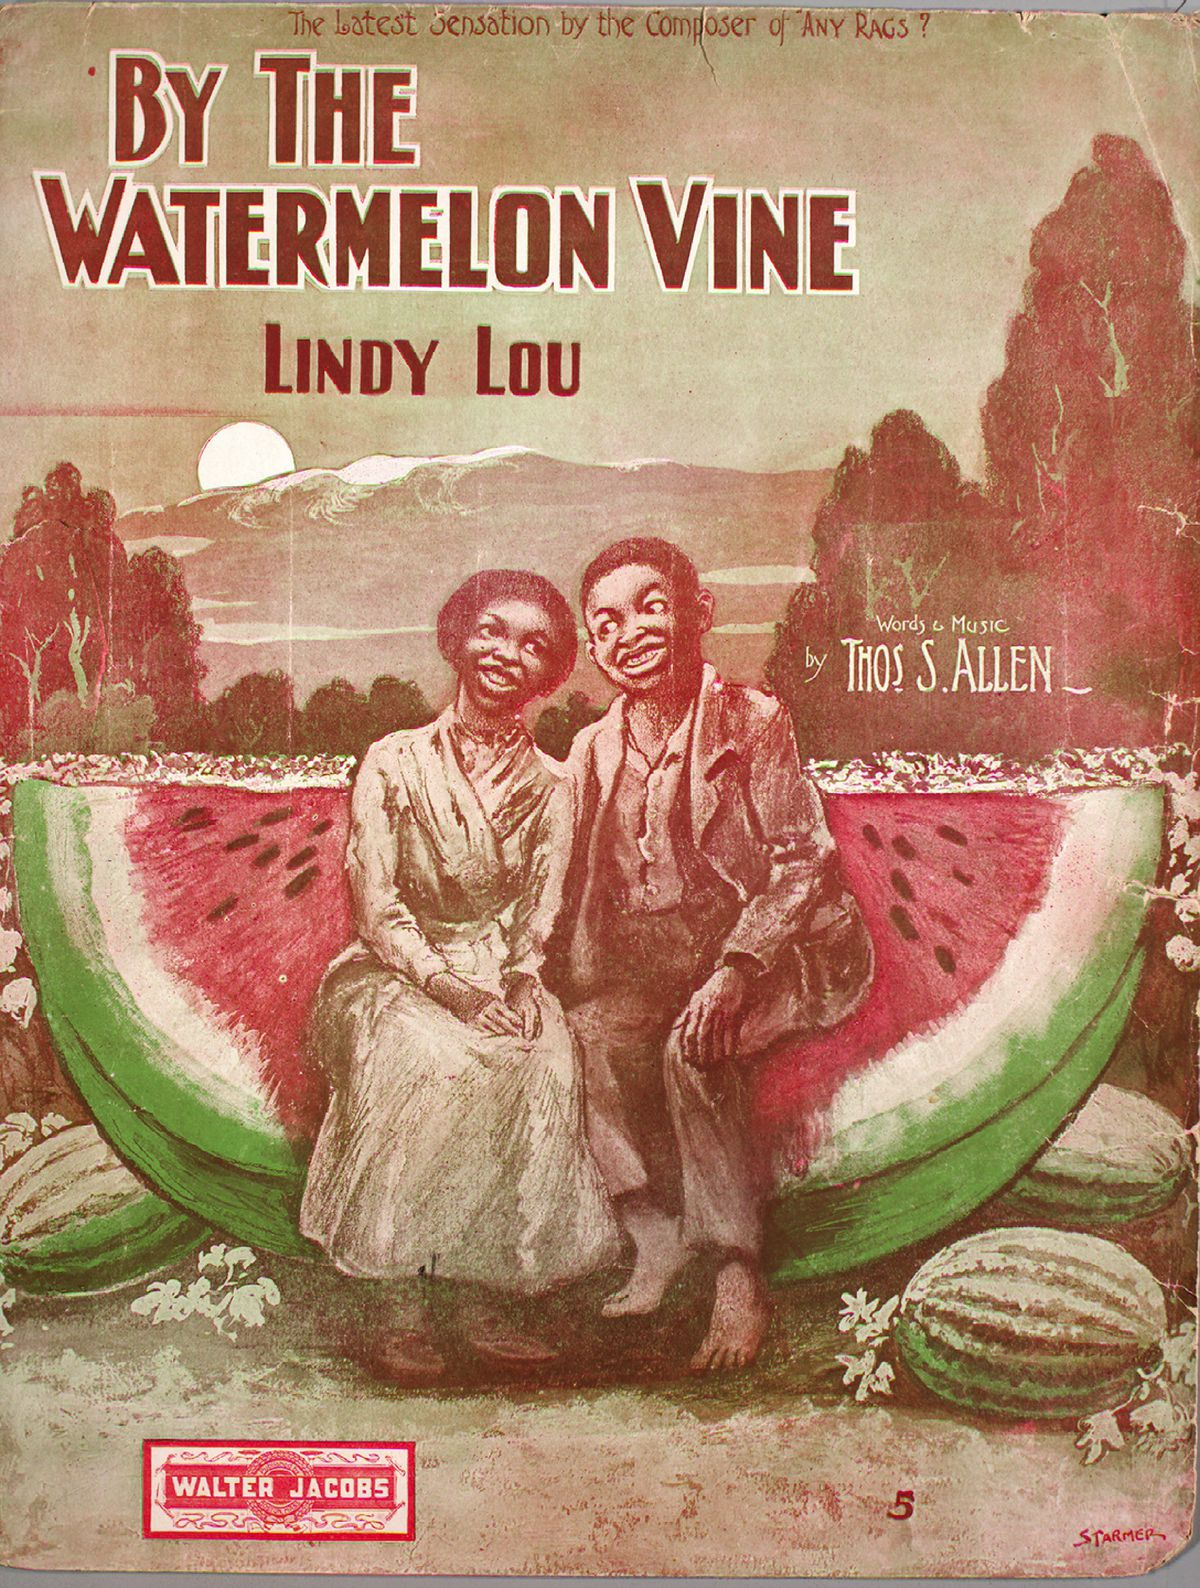 A cover image showing a racist stereotype of two black people smiling in front of a large watermelon.